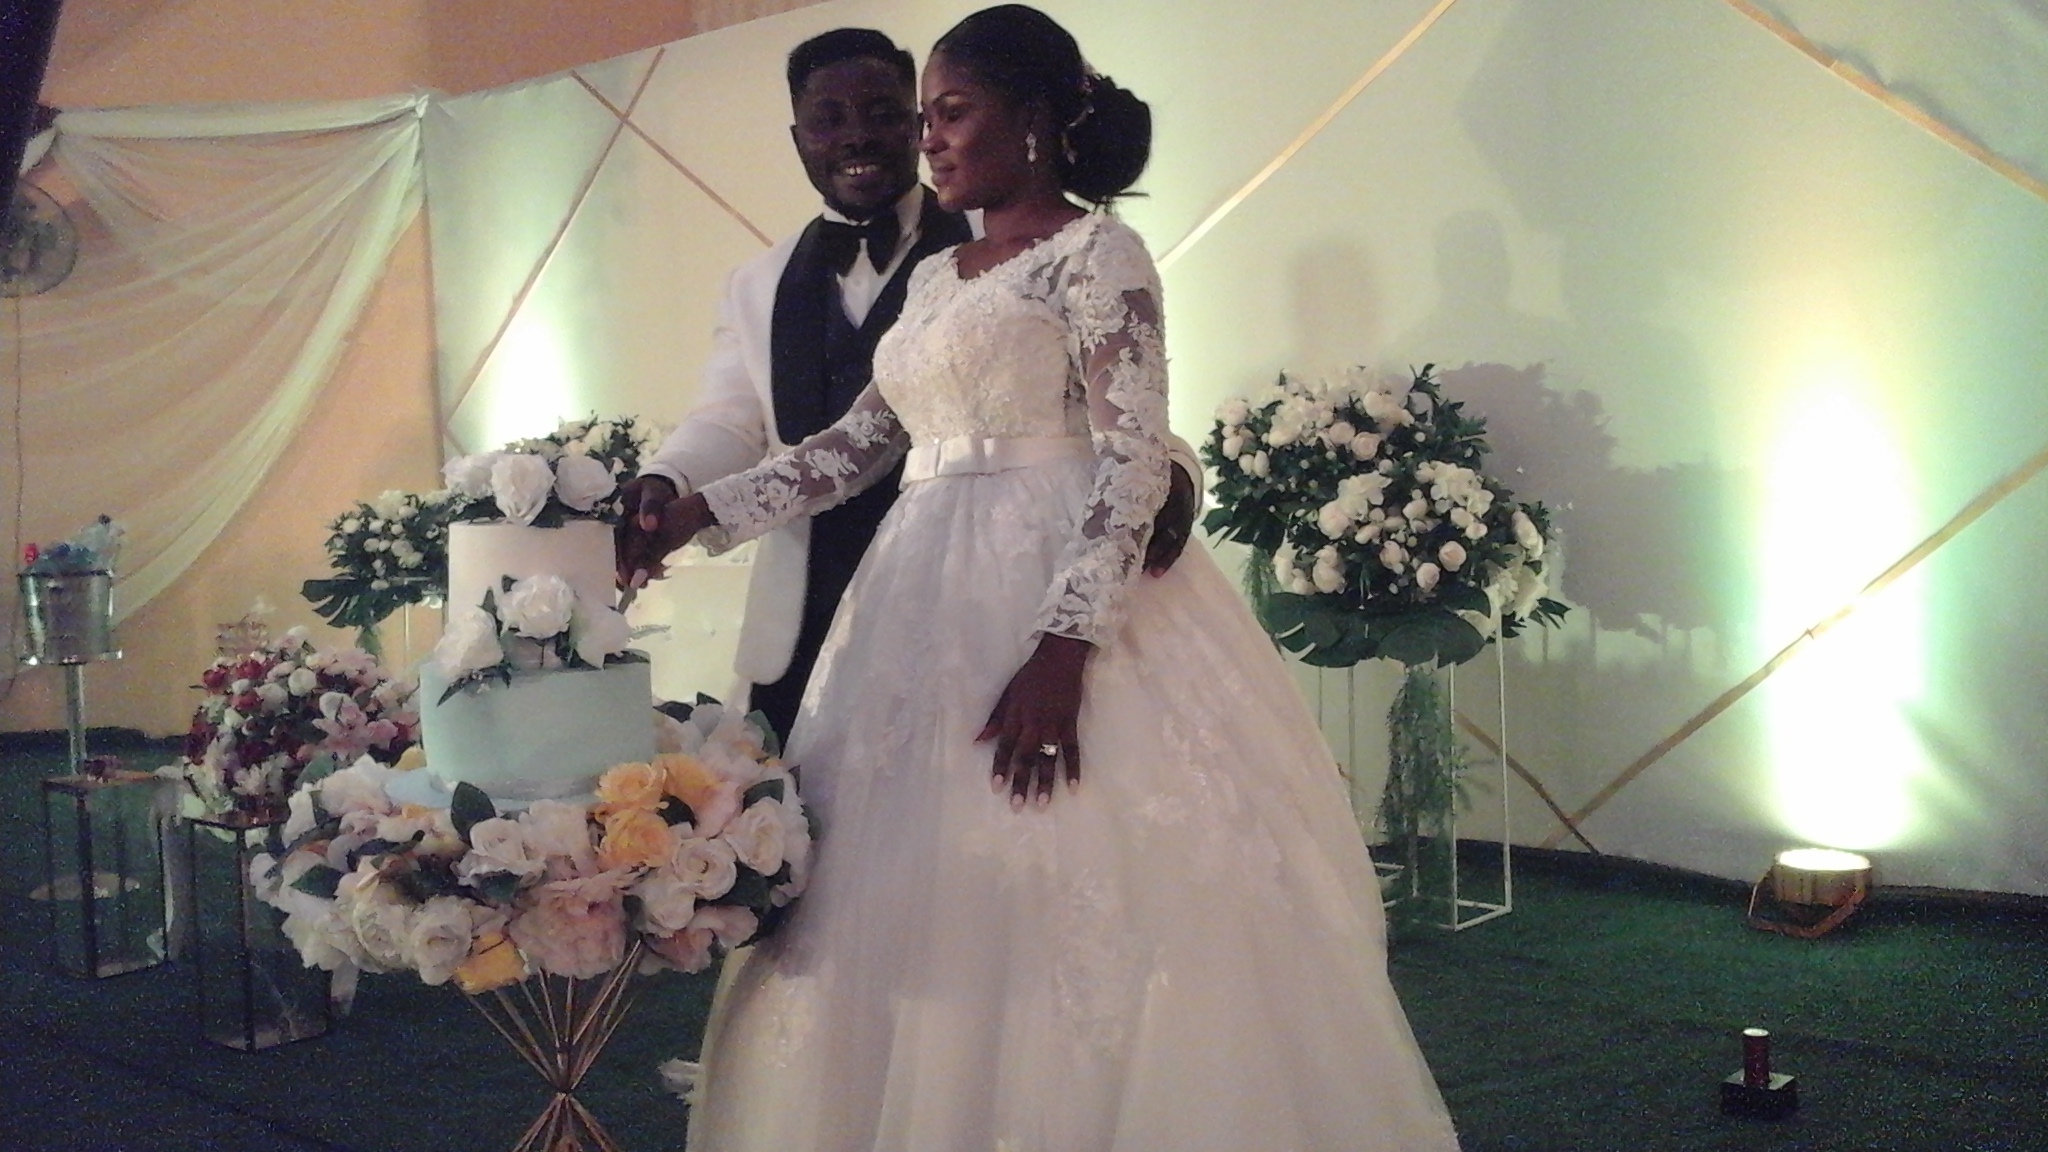 •The new couple, Gideon and Peace Ayogu, about to cut their wedding cake . . . on Saturday